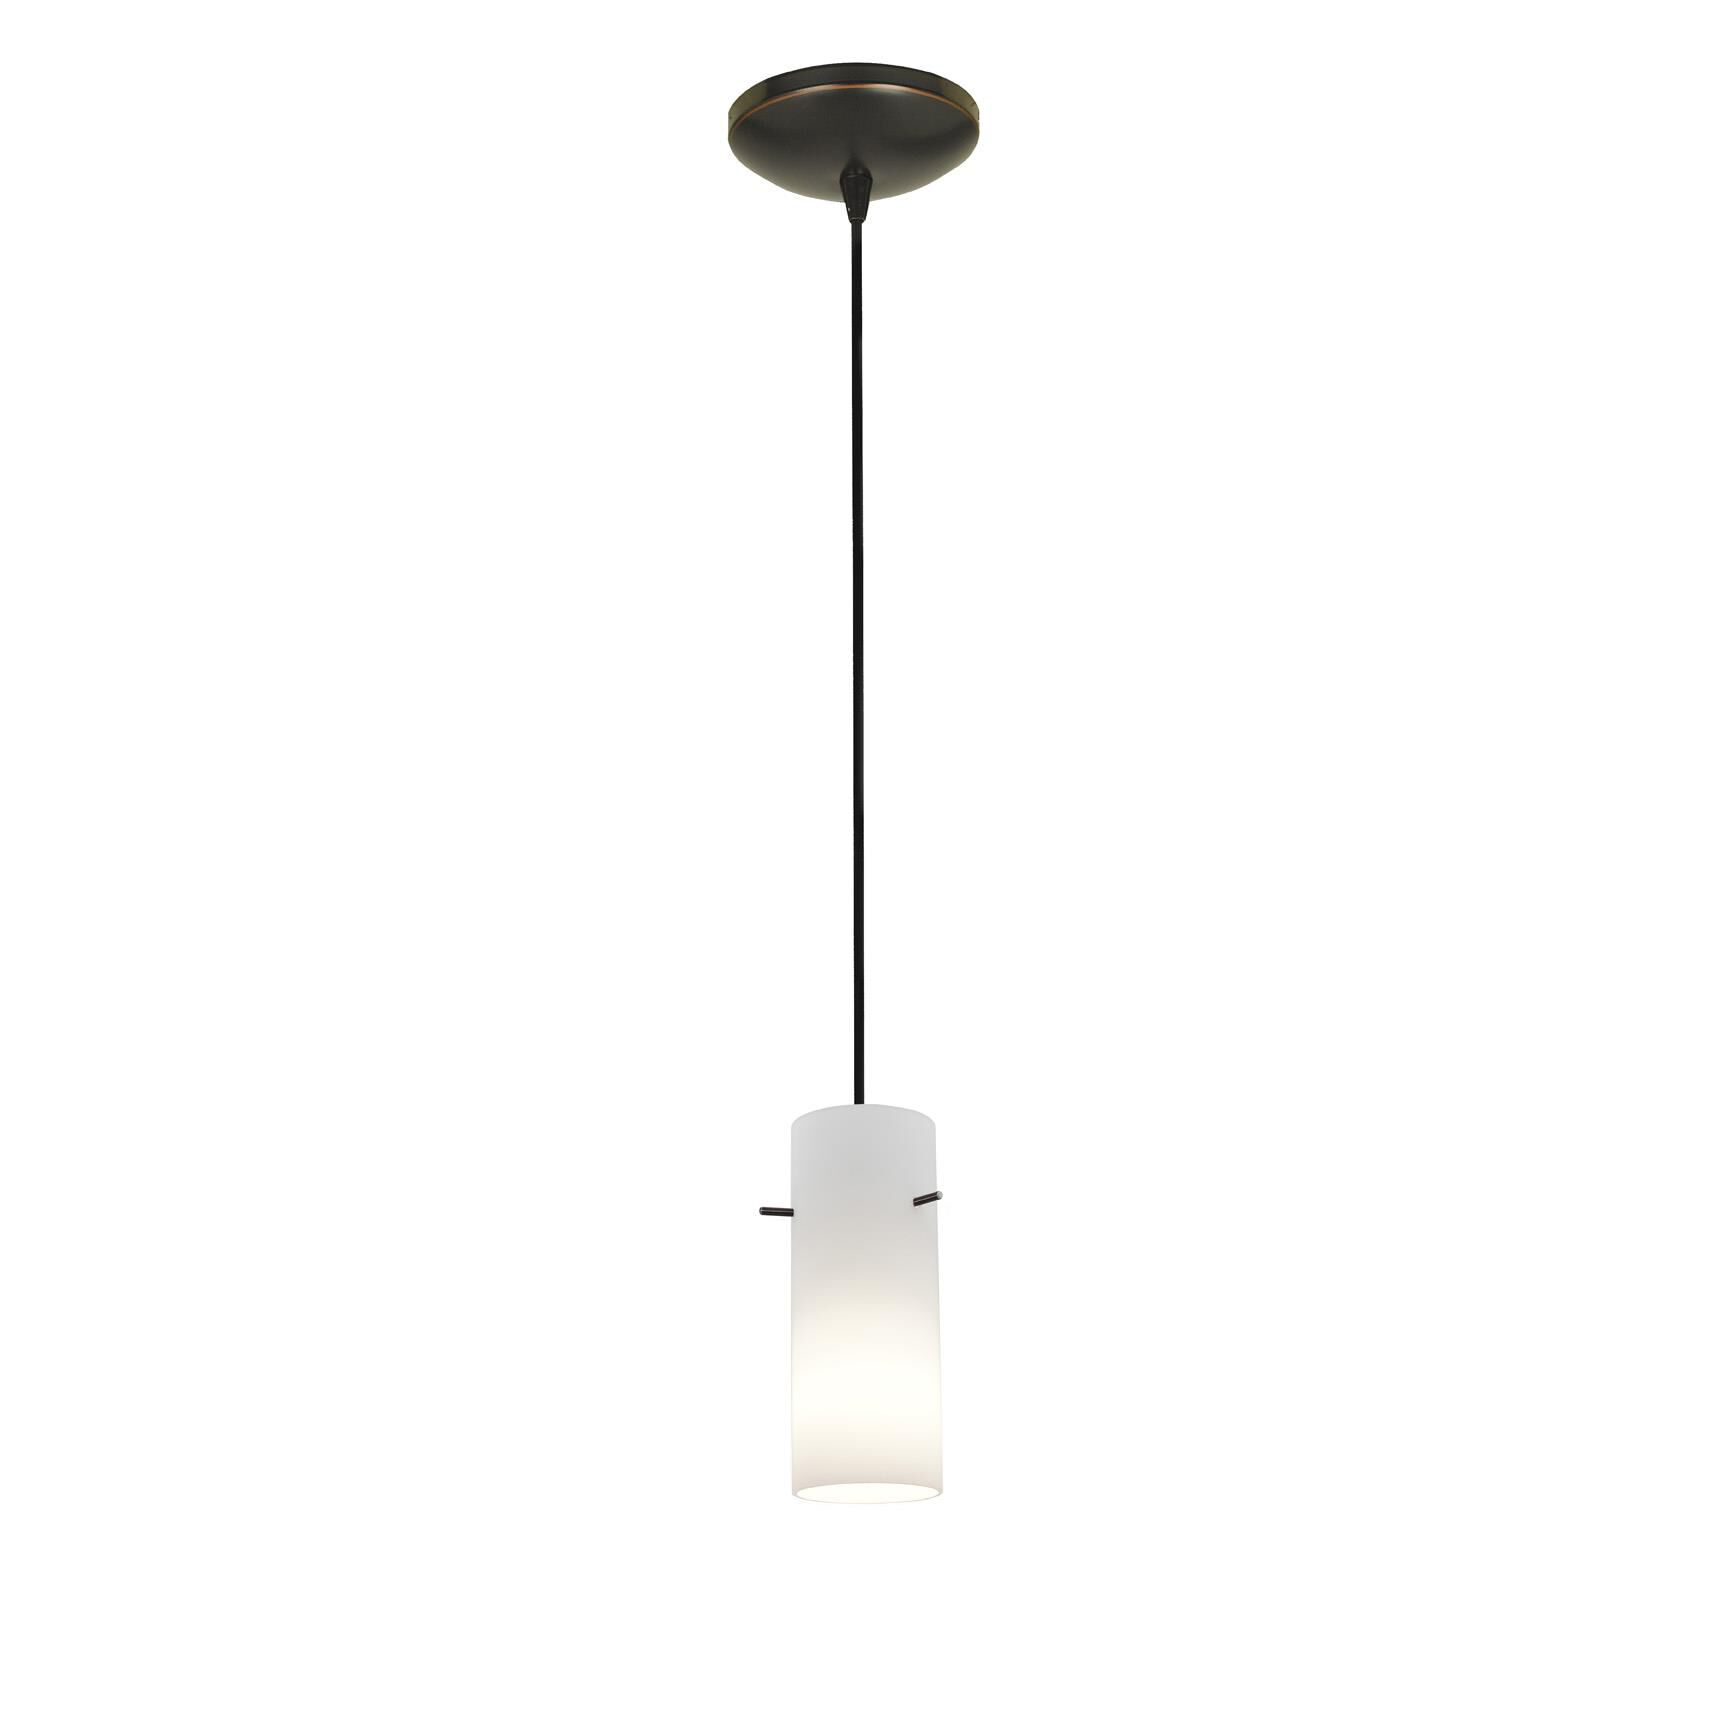 Access Lighting Cylinder 4 Inch Mini Pendant Cylinder 28030 1C ORBOPL Modern Contemporary